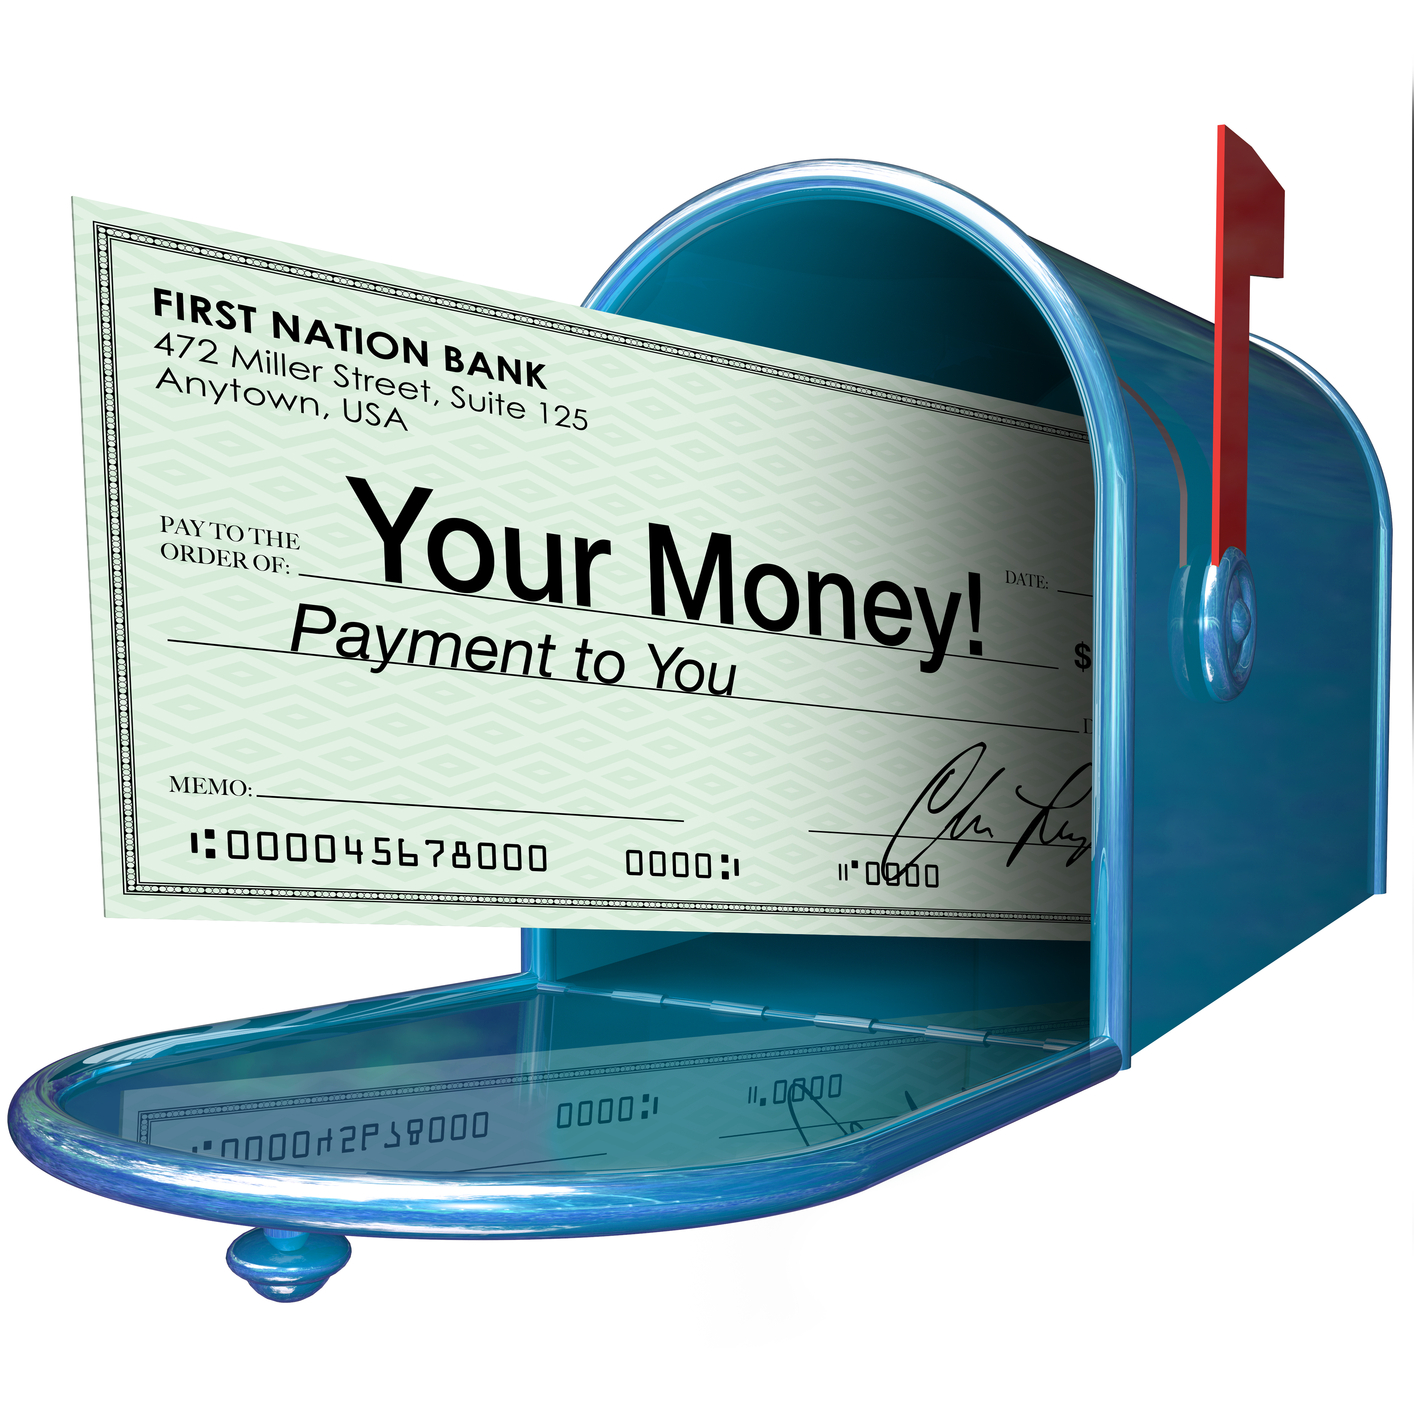 Government Cheques Have A Low Risk And Simple For Cheque Cashing